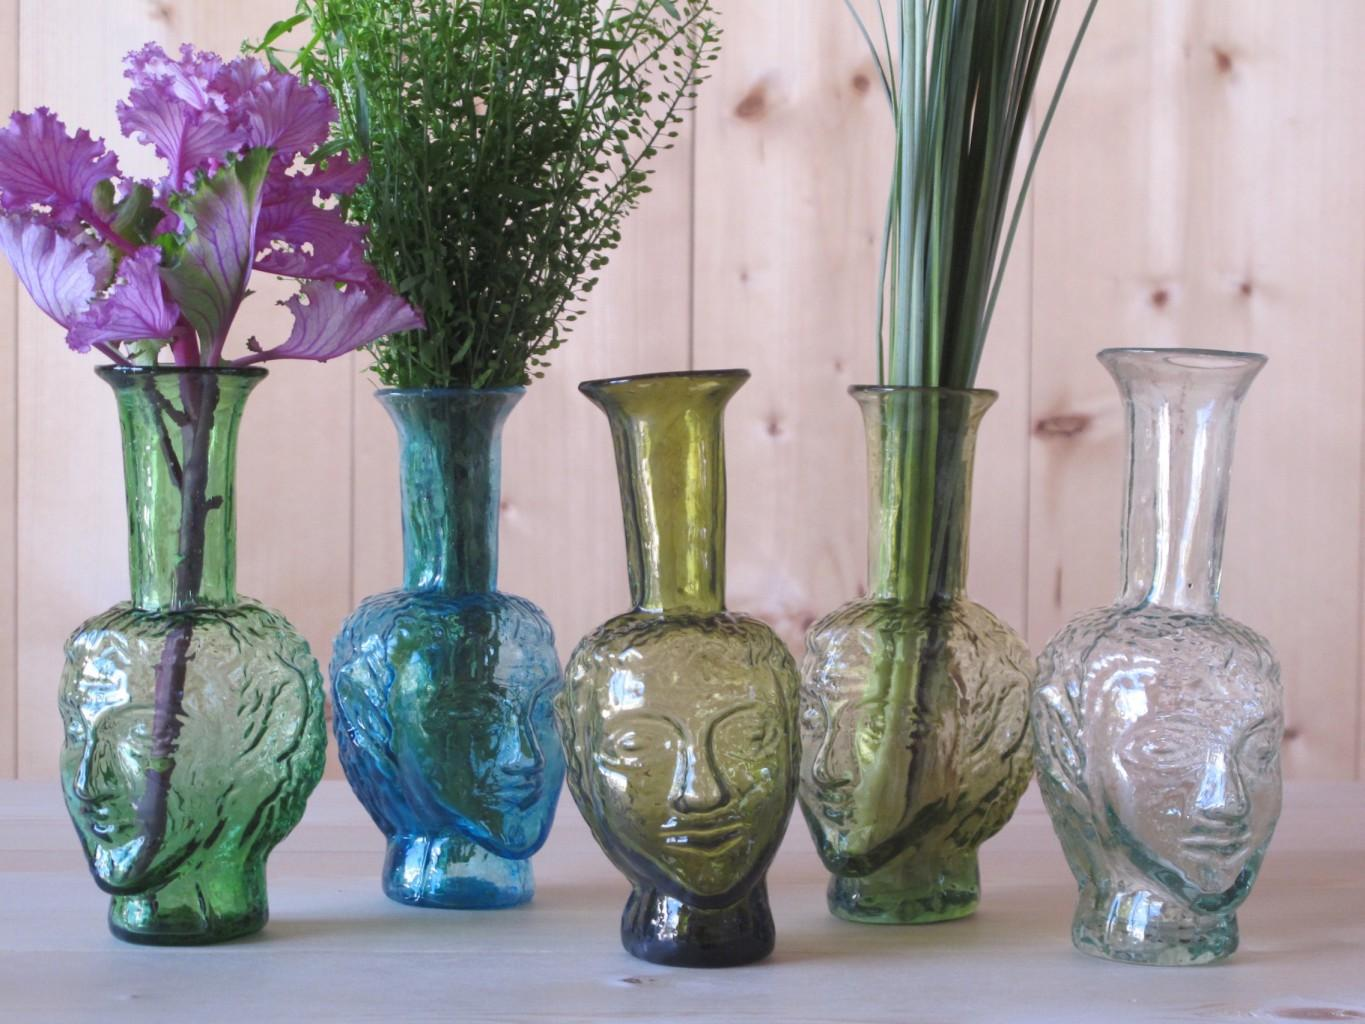 La Soufflerie glass head vase, £35.99 from  Trouva